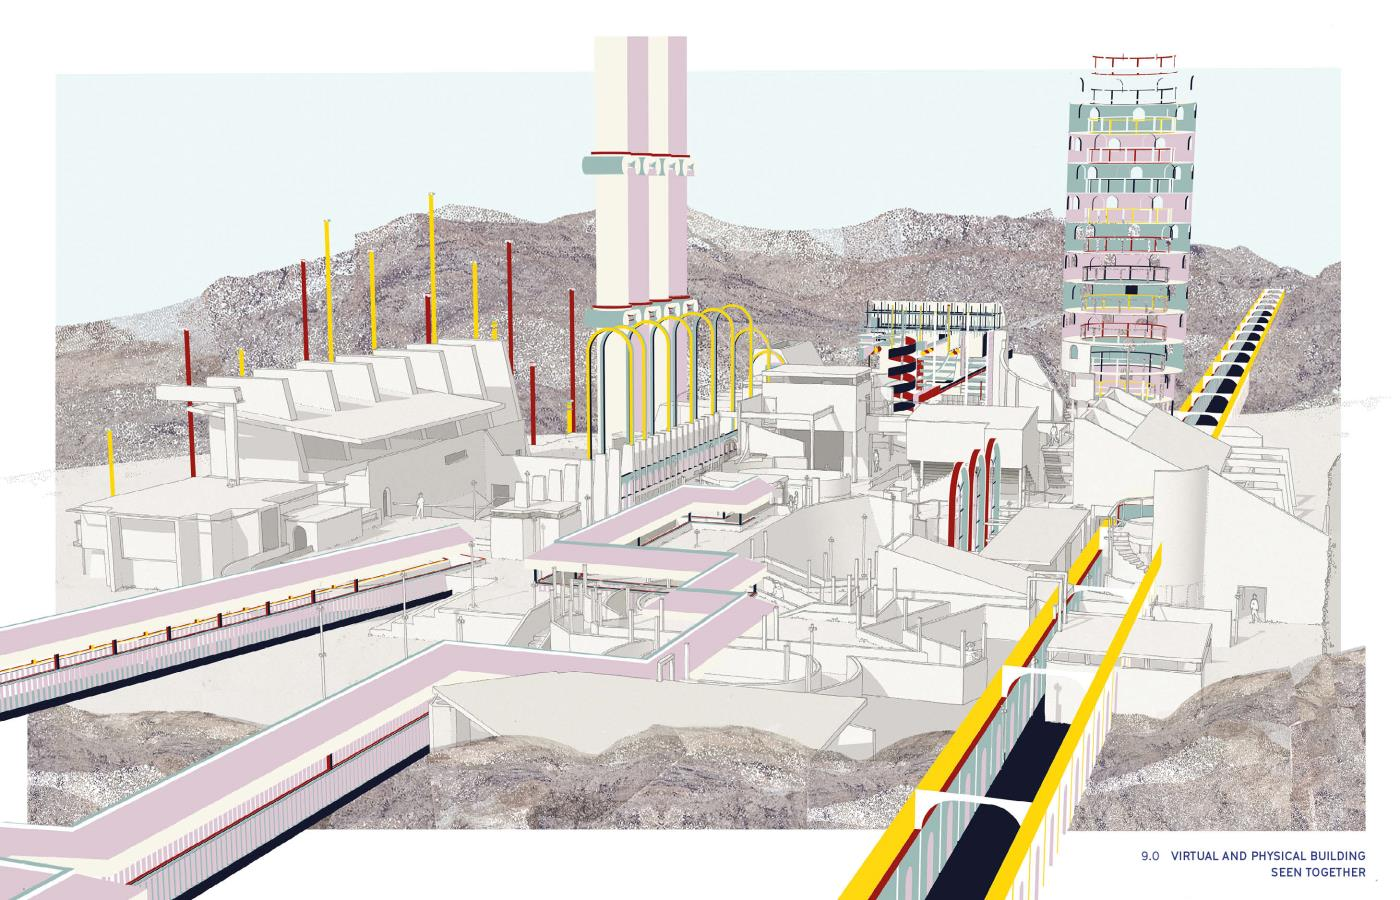 Ascaya City Hall: Constructing a virtual civic image